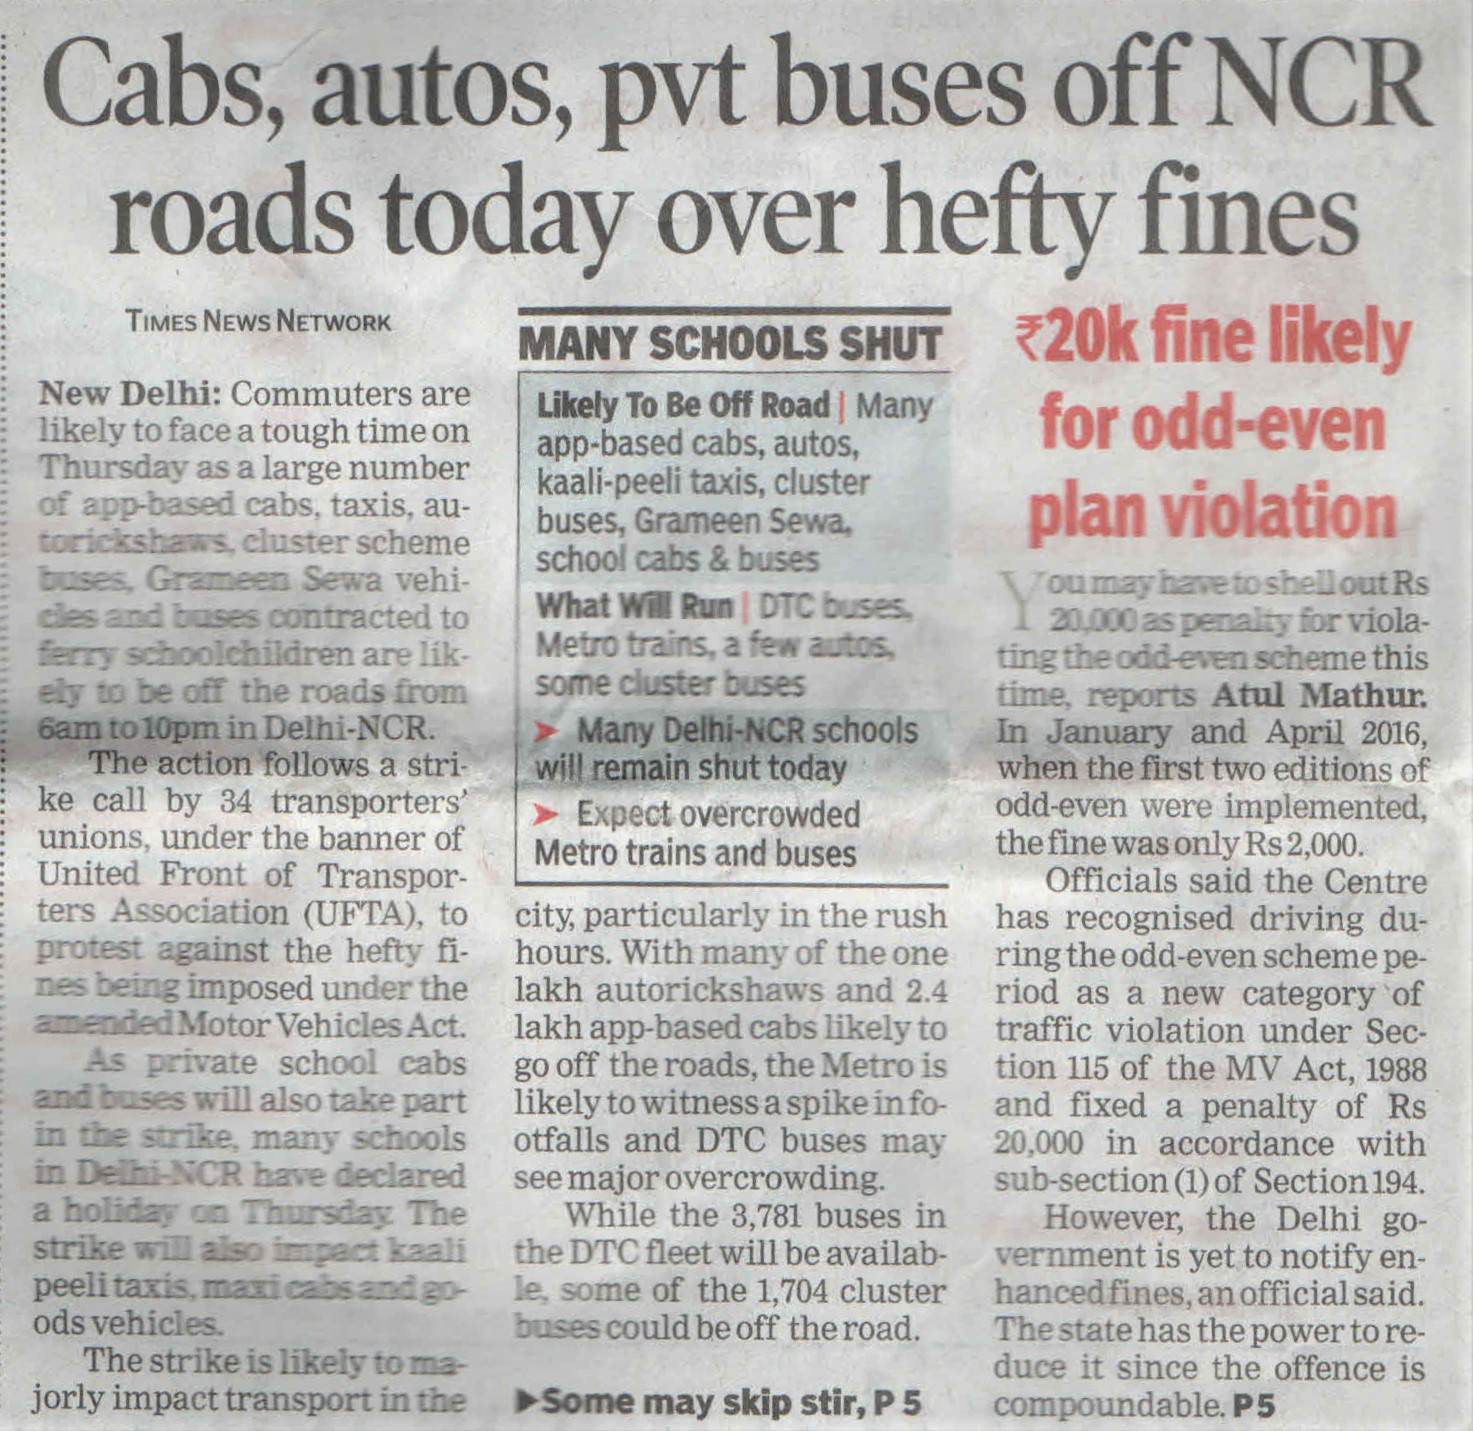 Cabs, autos, pvt buses off NCR roads today over hefty fines